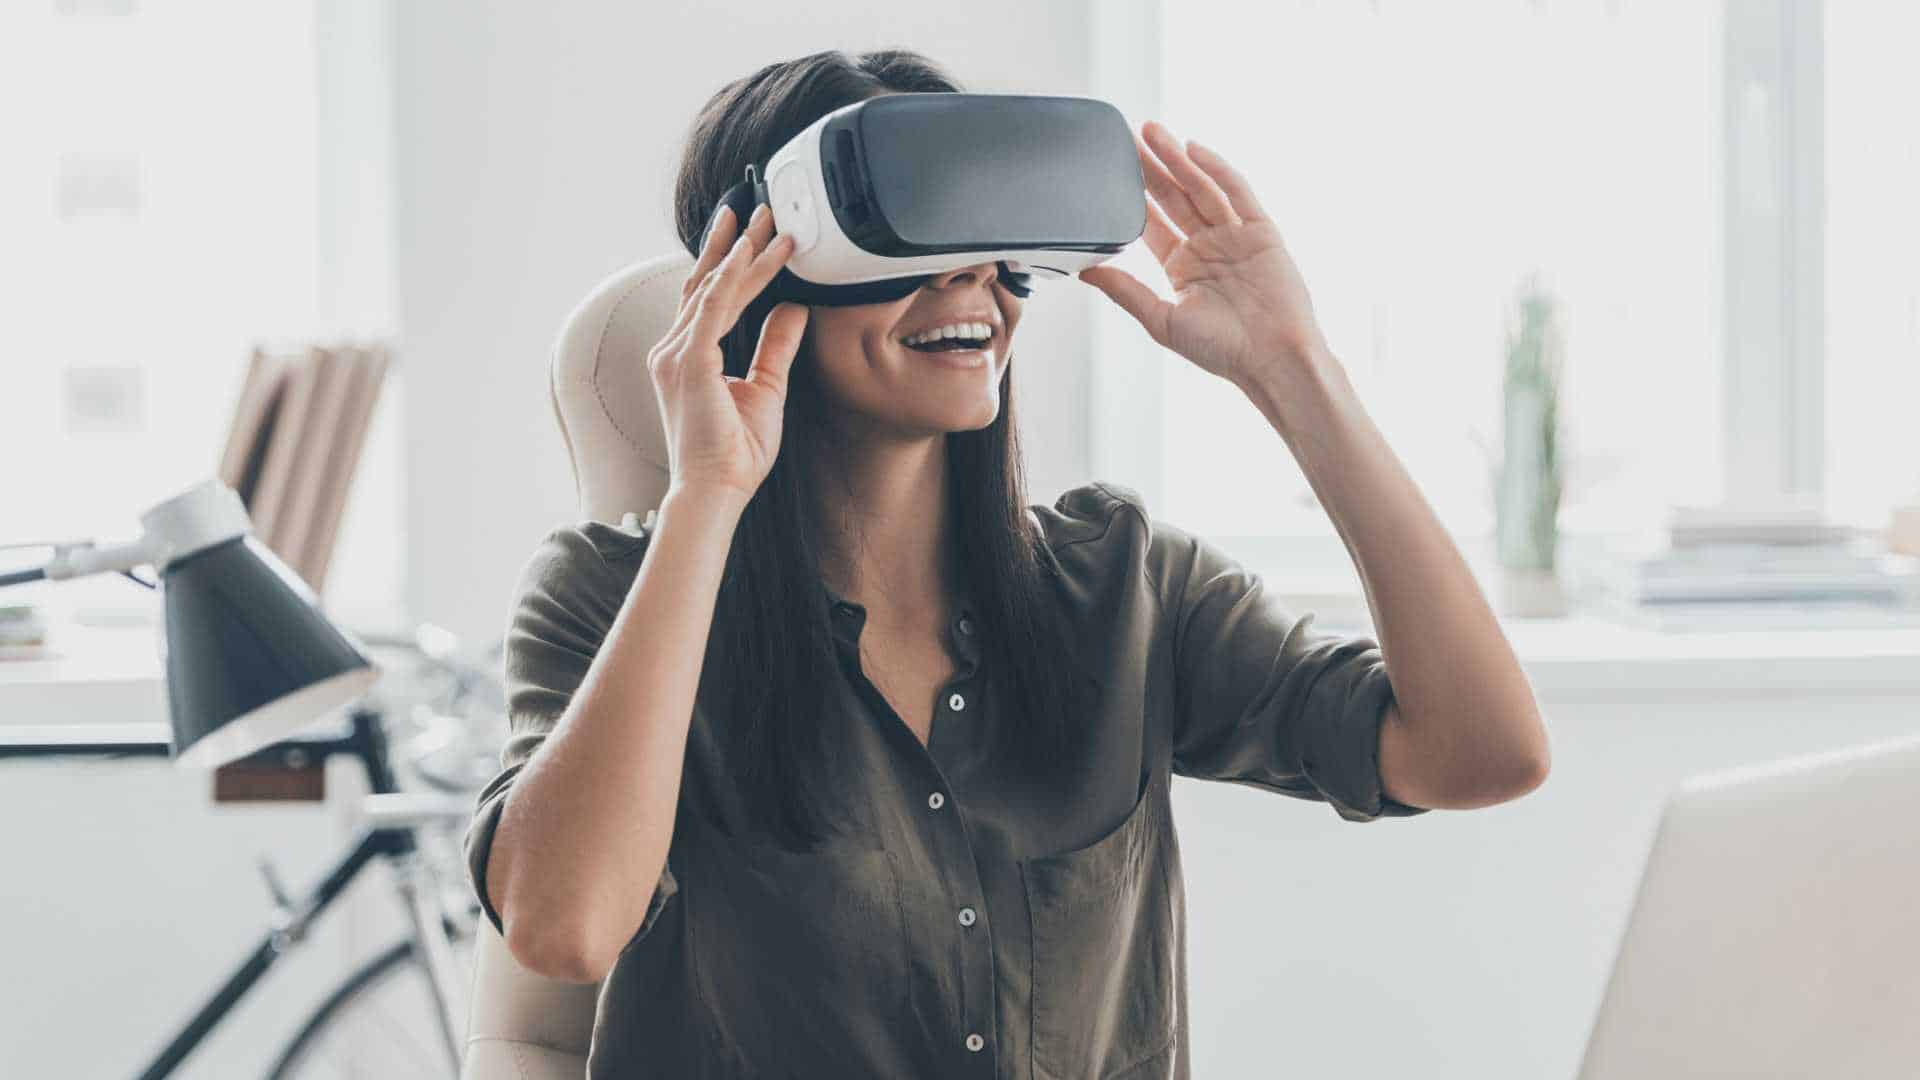 VR Training Use Cases